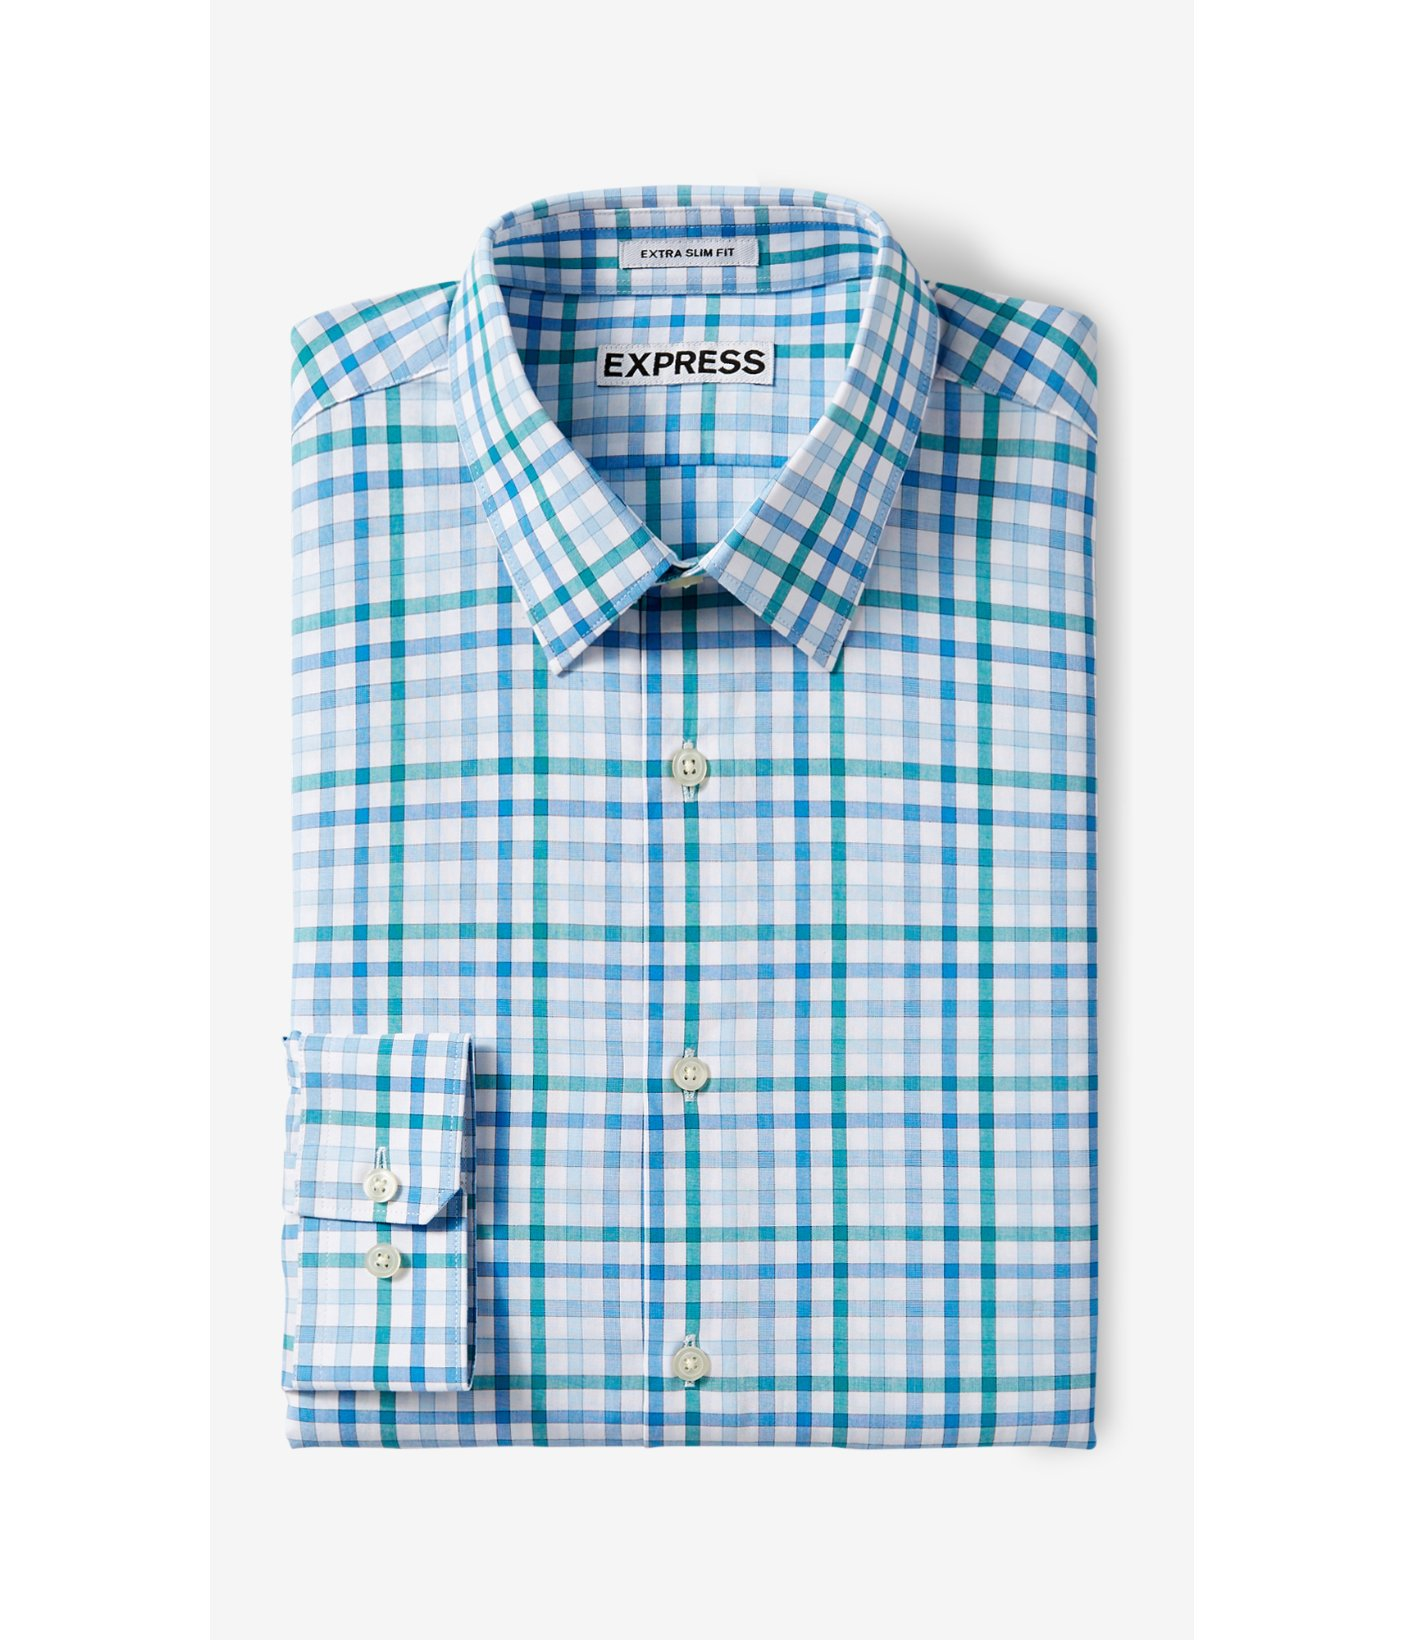 Lyst express slim check dress shirt blue in metallic for Blue check dress shirt